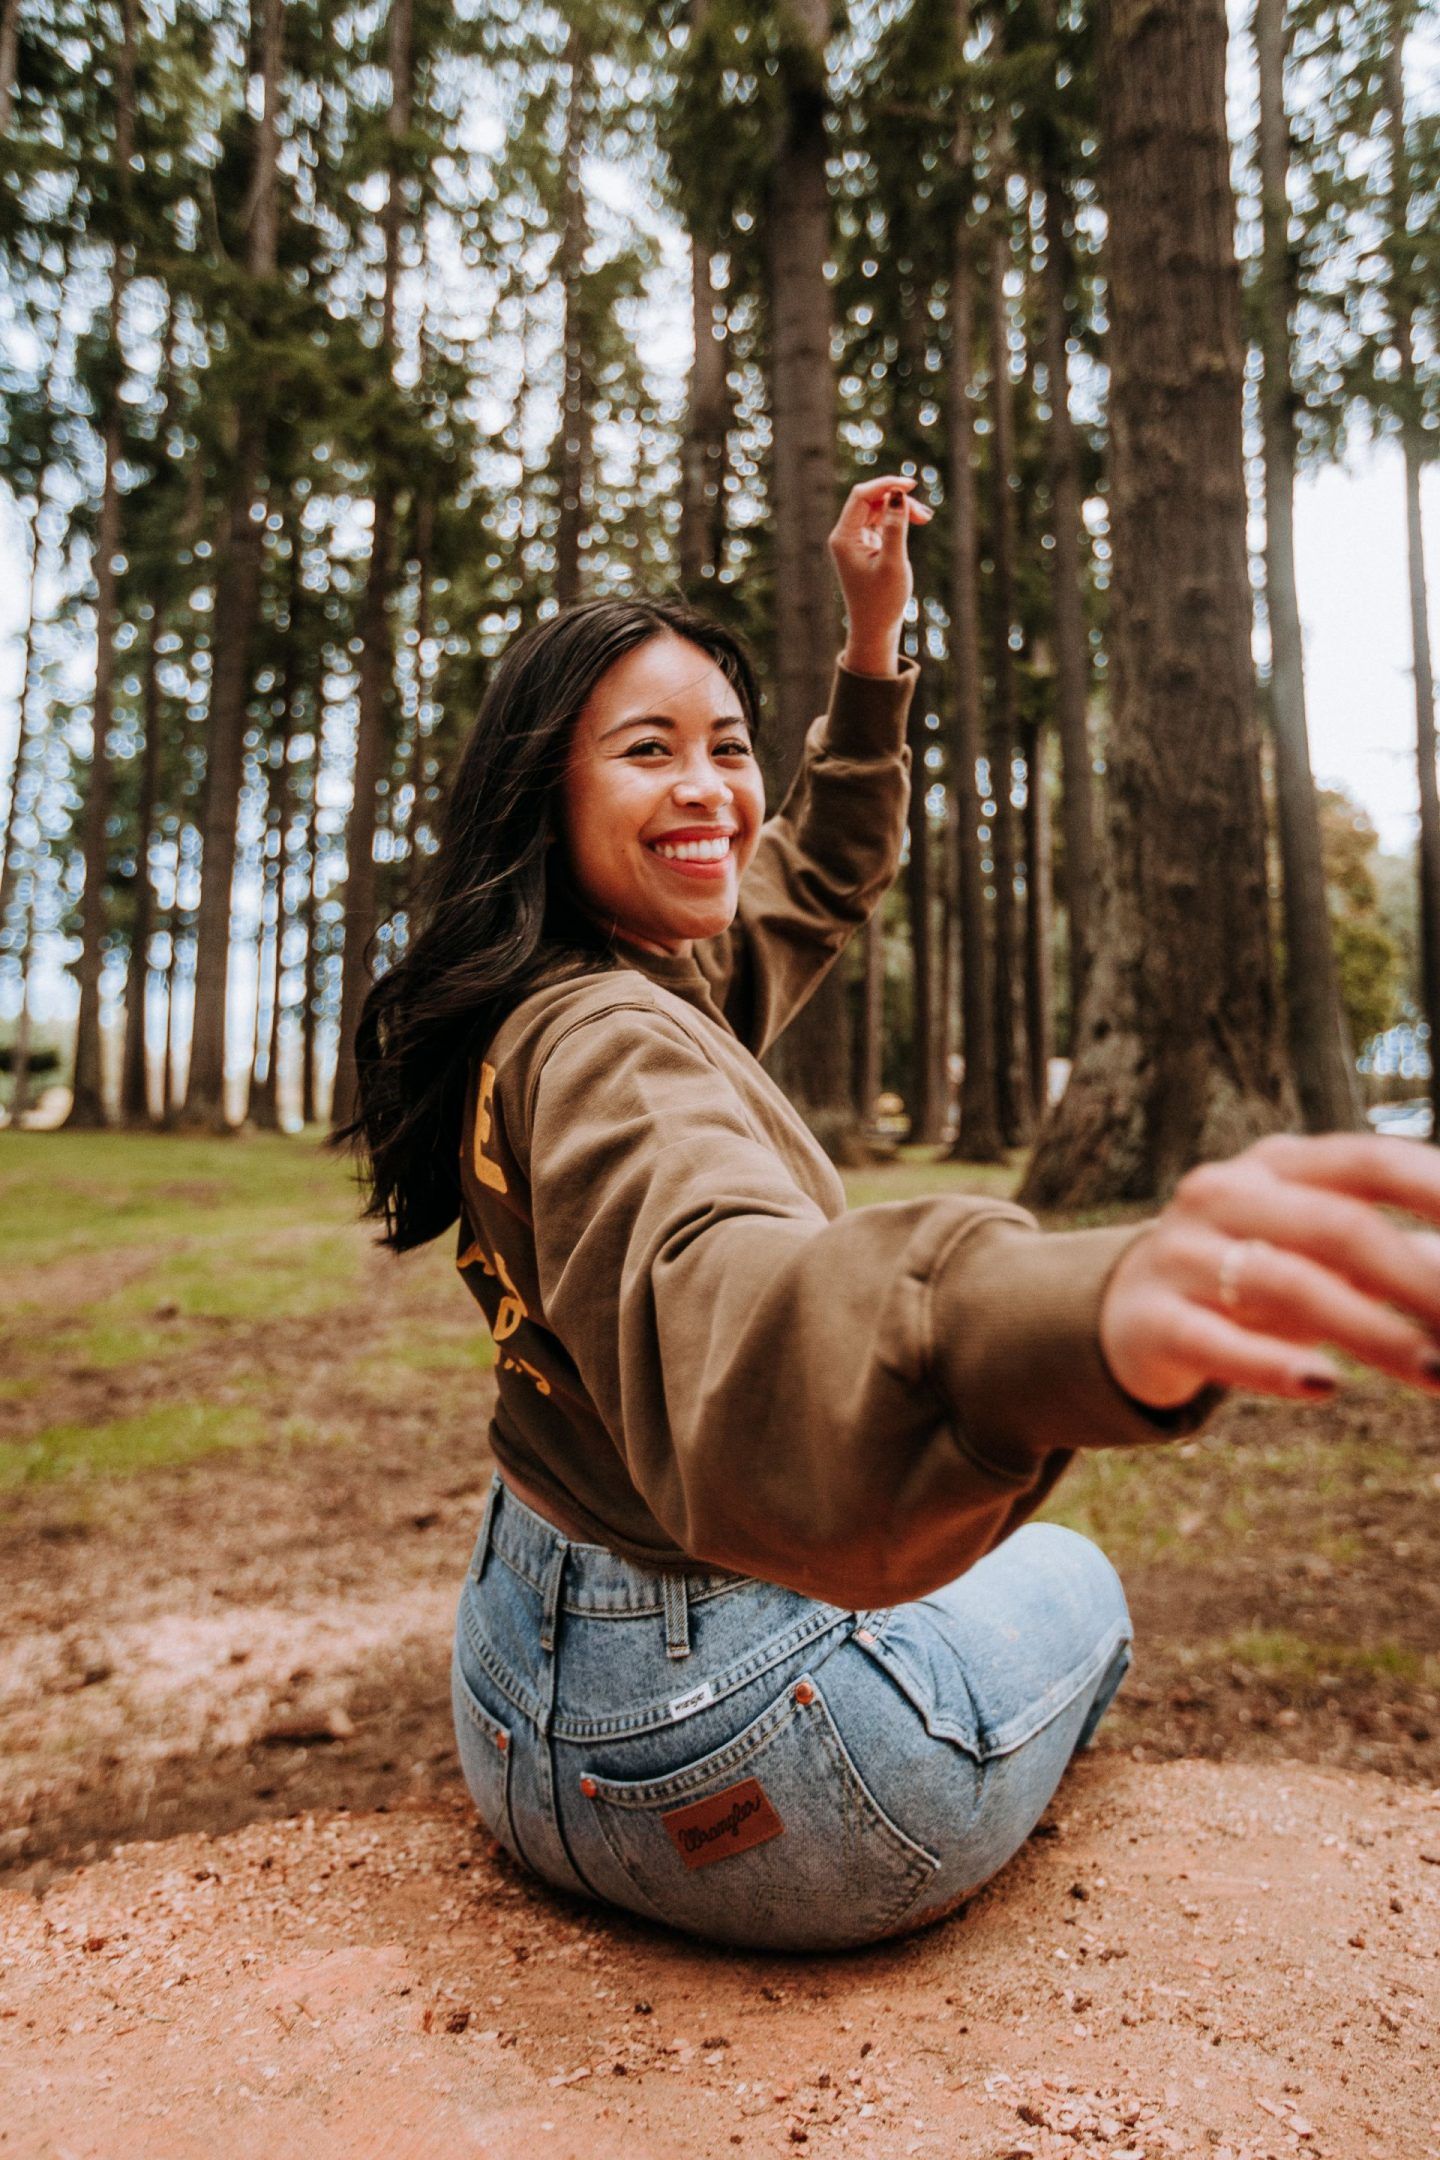 wrangler jeans - seattle content creator - fred segal x nordstrom